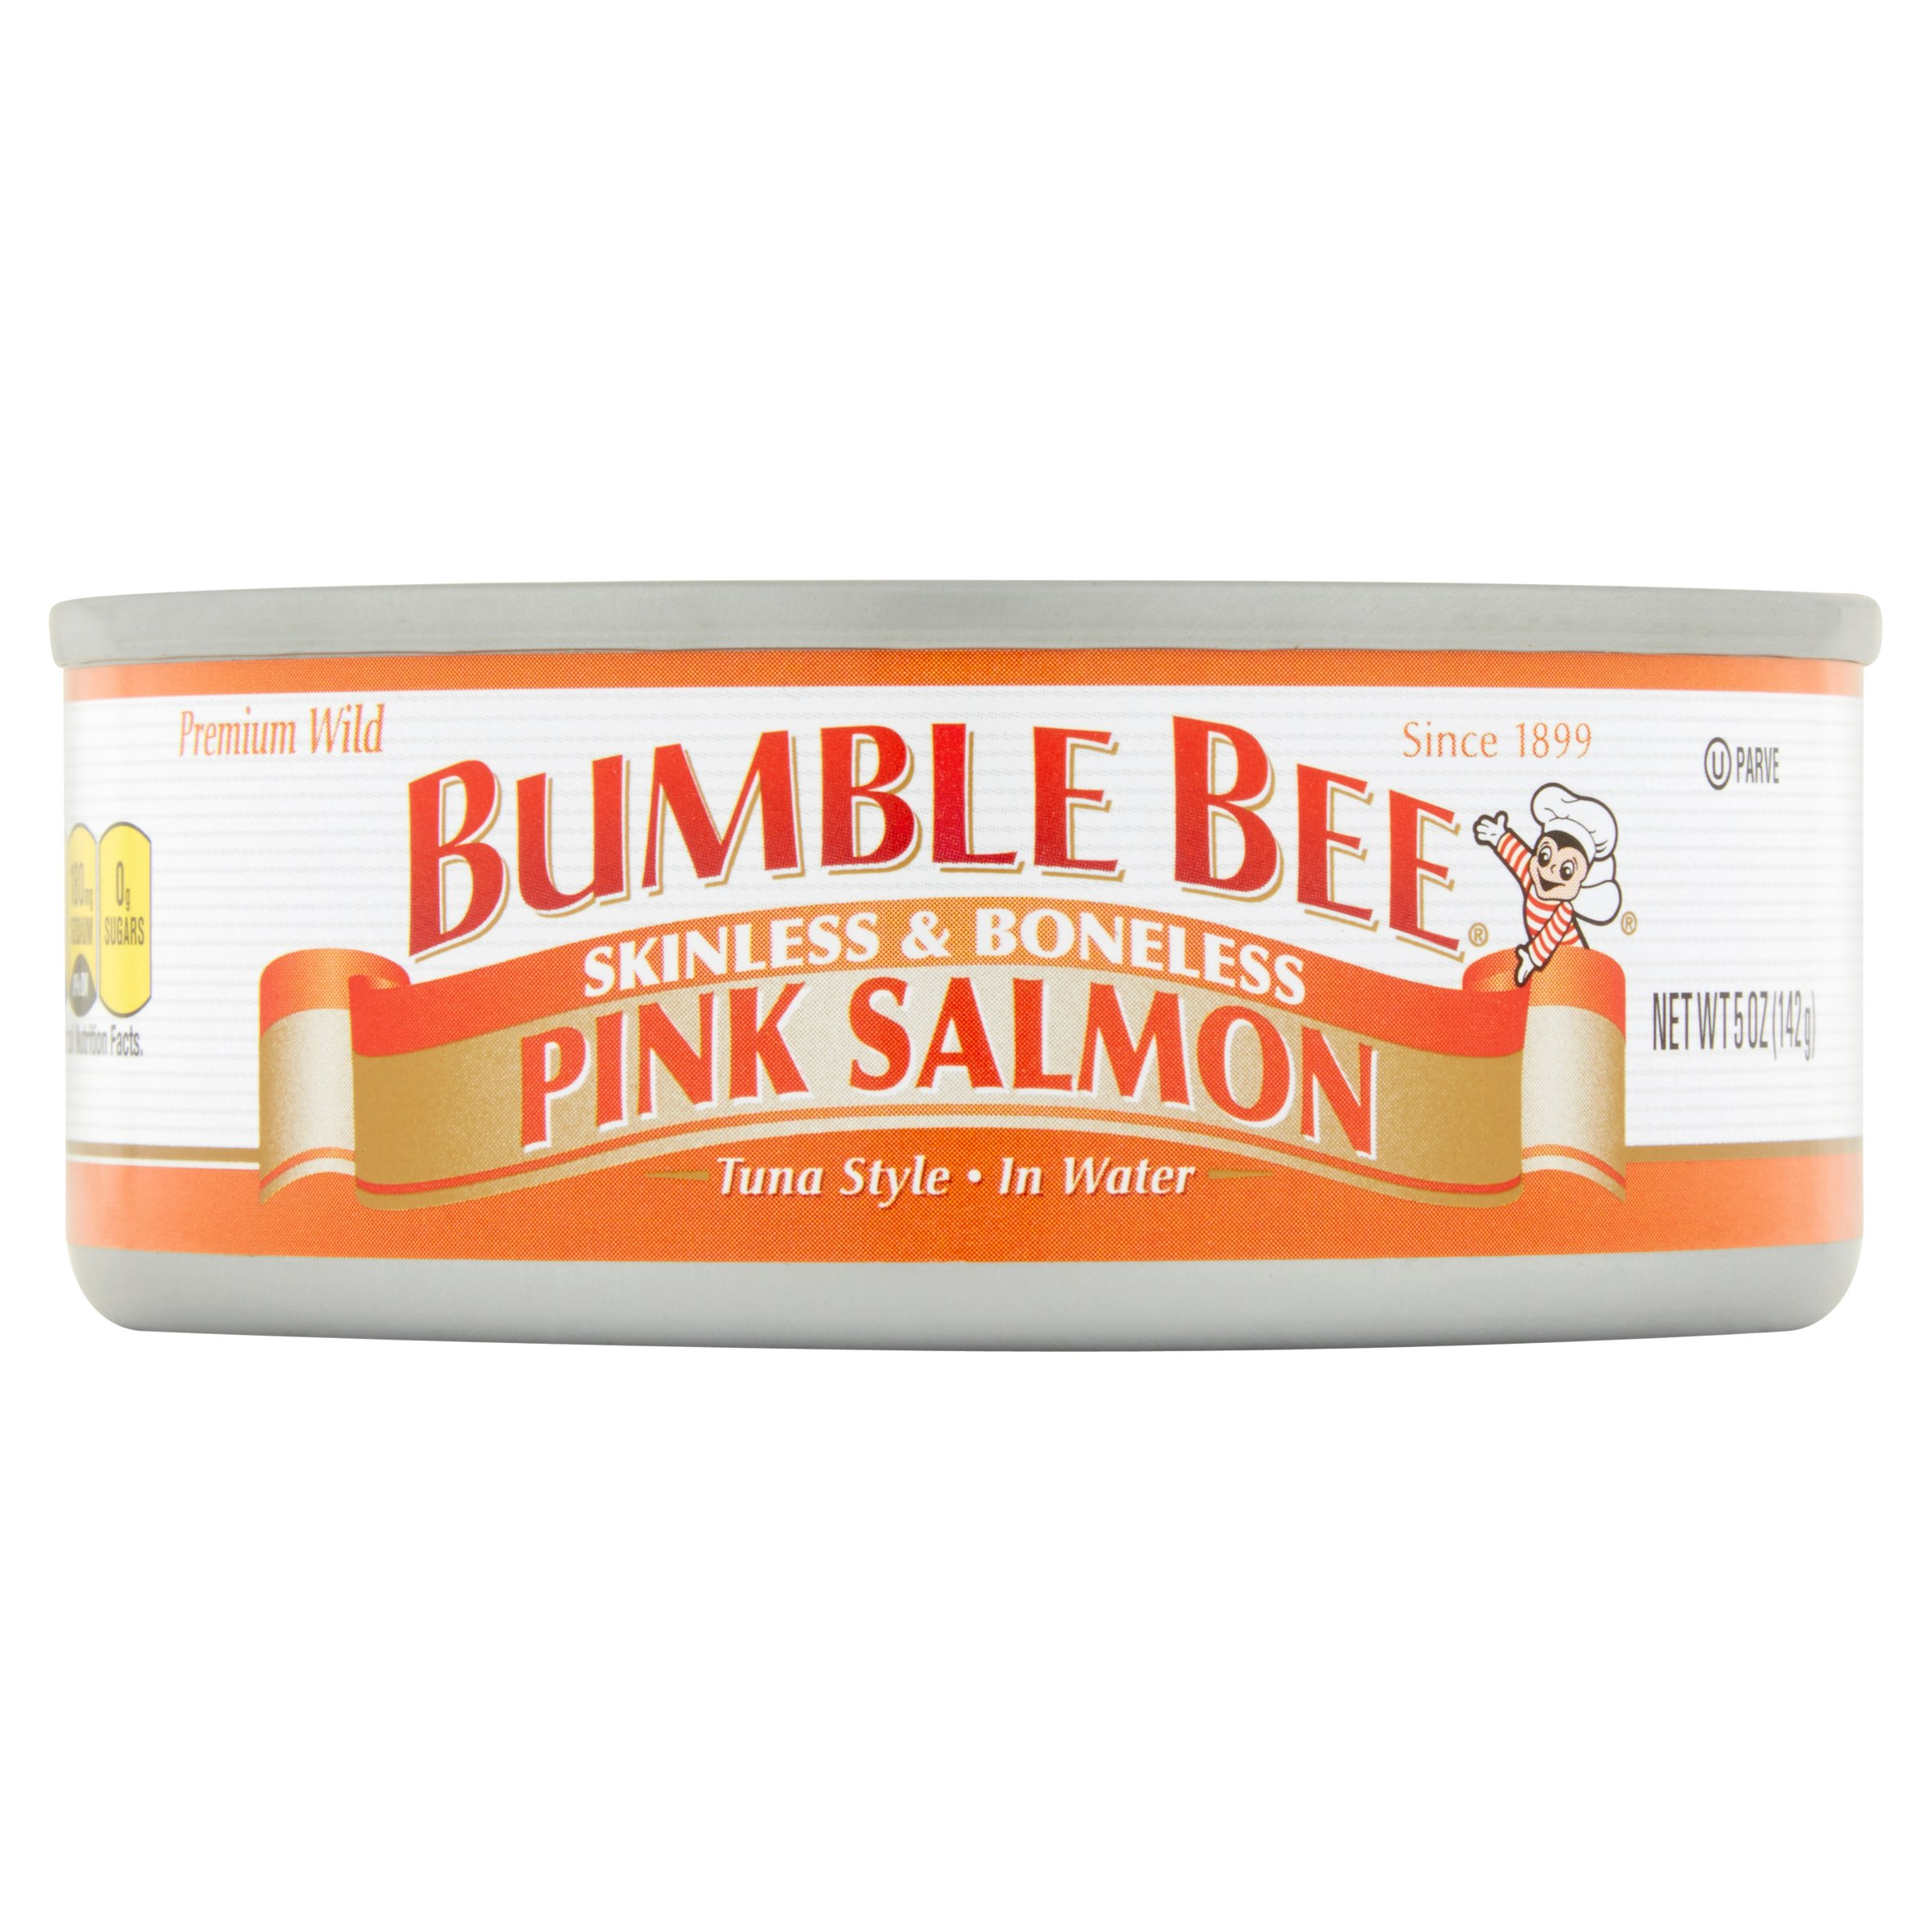 Bumble Bee Skinless and Boneless Wild Pink Salmon, 5oz can by Bumble Bee Foods